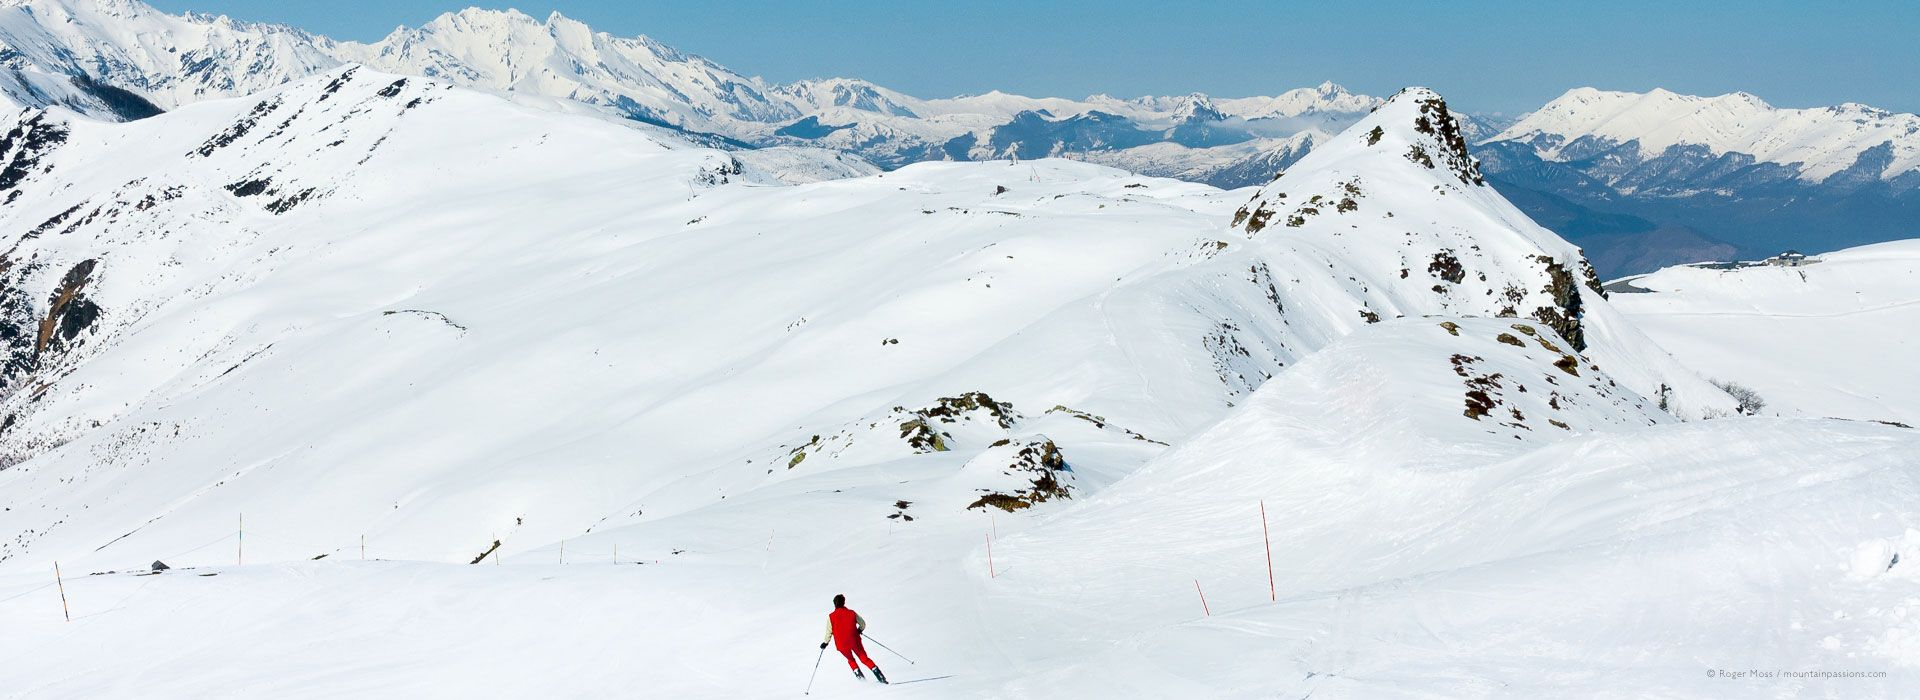 The Pyrenees offers some of the best ski slopes in Europe.